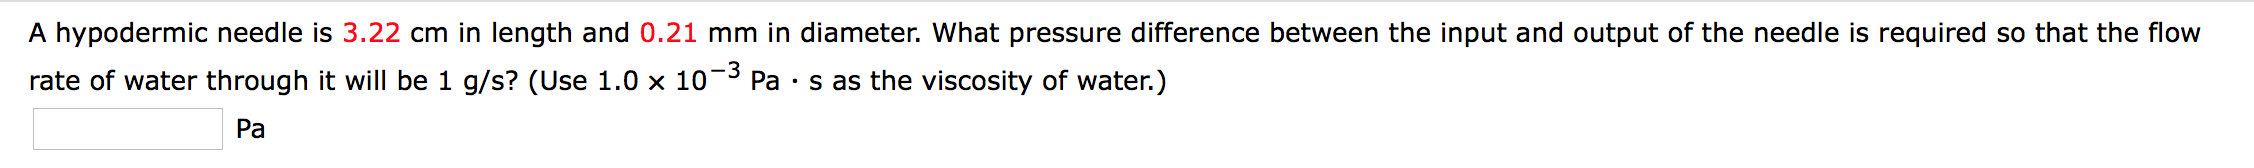 A hypodermic needle is 3.22 cm in length and 0.21 mm in diameter. What pressure difference between the input and output of the needle is required so that the flow -3 Pa s as the viscosity of water.) rate of water through it will be 1 g/s? (Use 1.0 x 10 Pa